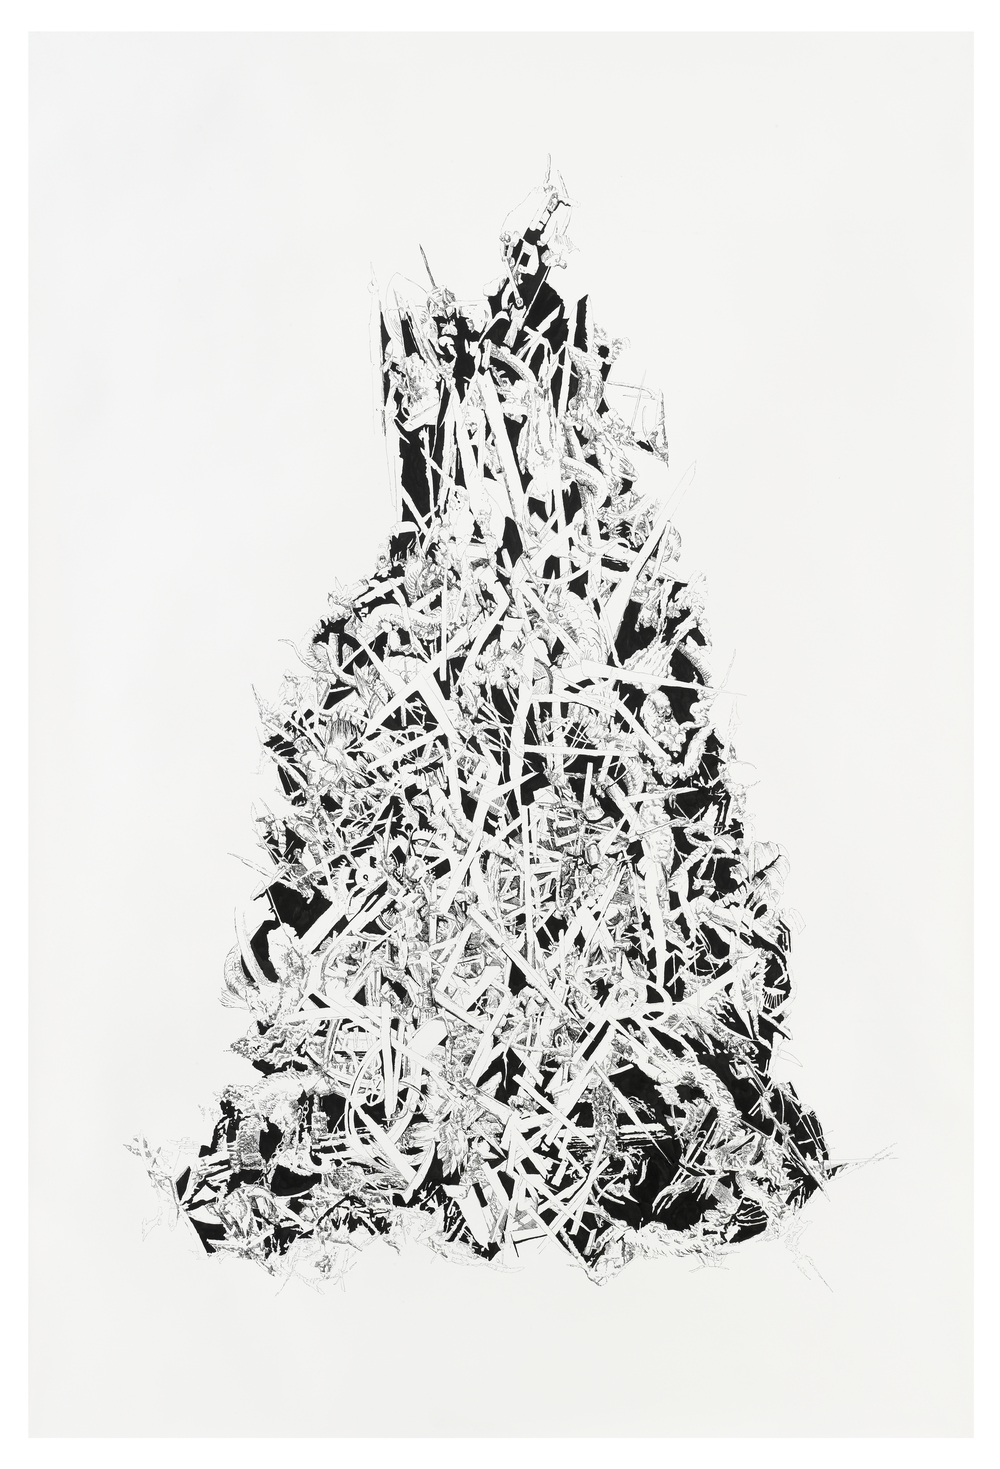 Bettina Krieg | P 69 Untitled | Ink on Paper | 250 x 190 cm | 2010